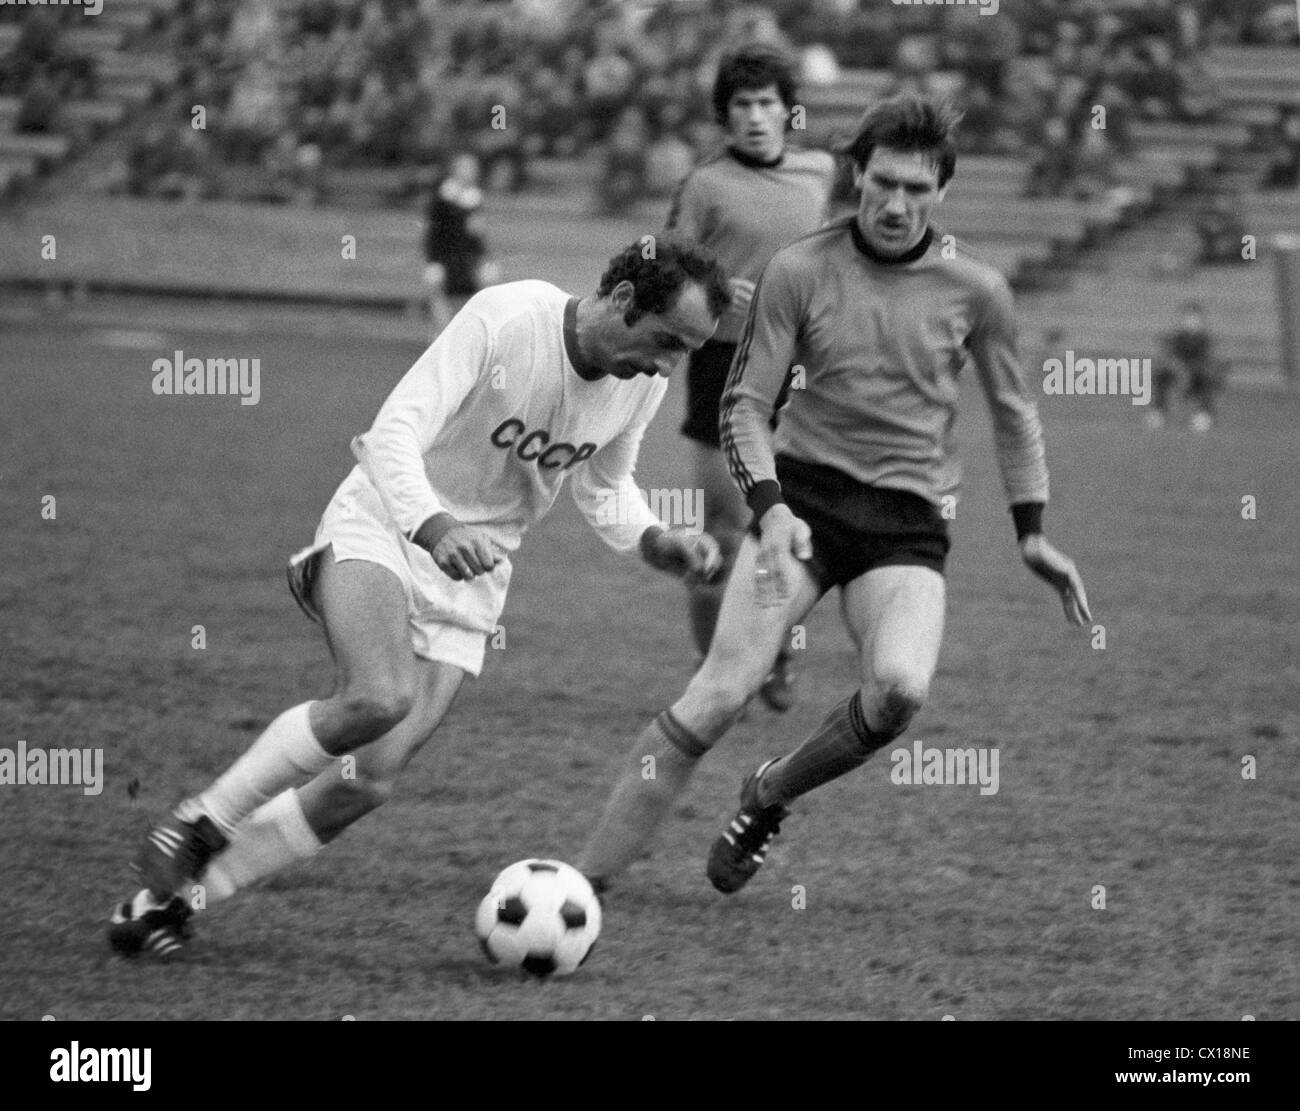 Moscow. USSR. The under-21 football match between the USSR and Netherlands ended with 3:0 score. Soviet footballer - Stock Image